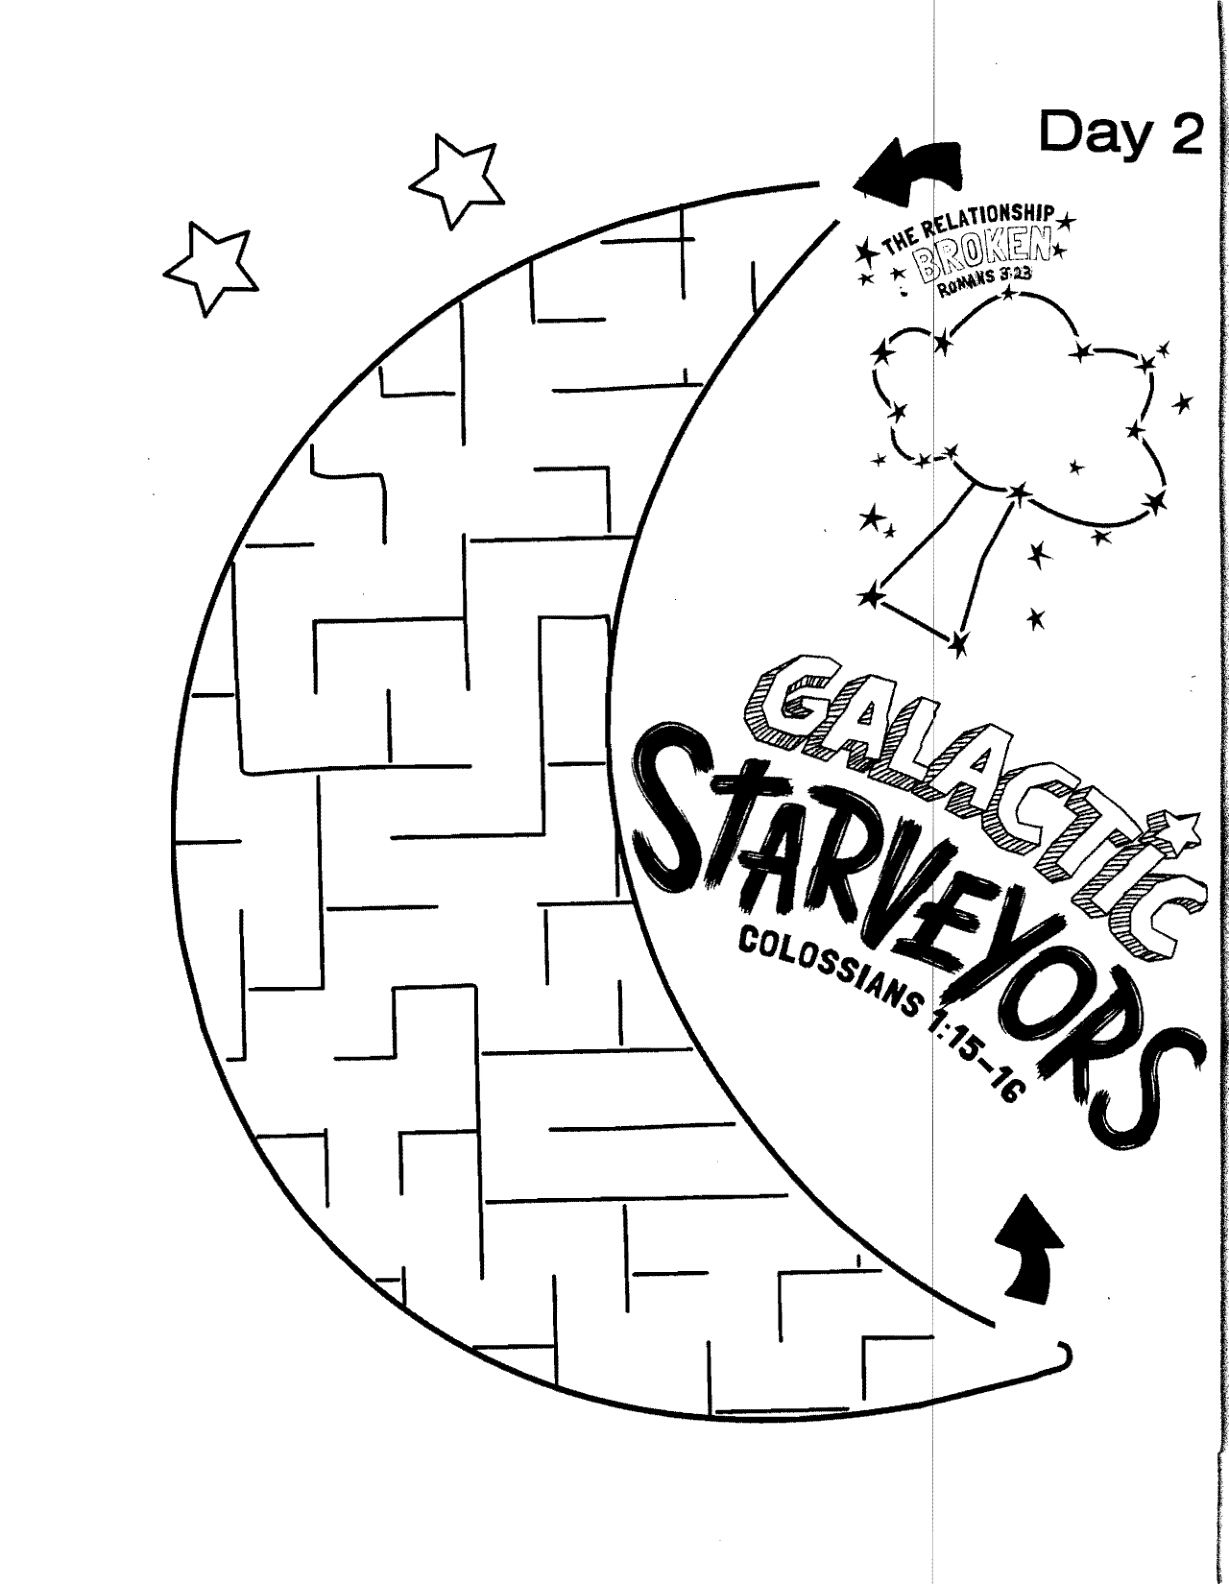 Galactic Starveyors Coloring Sheet Vbs Day 2 Easy